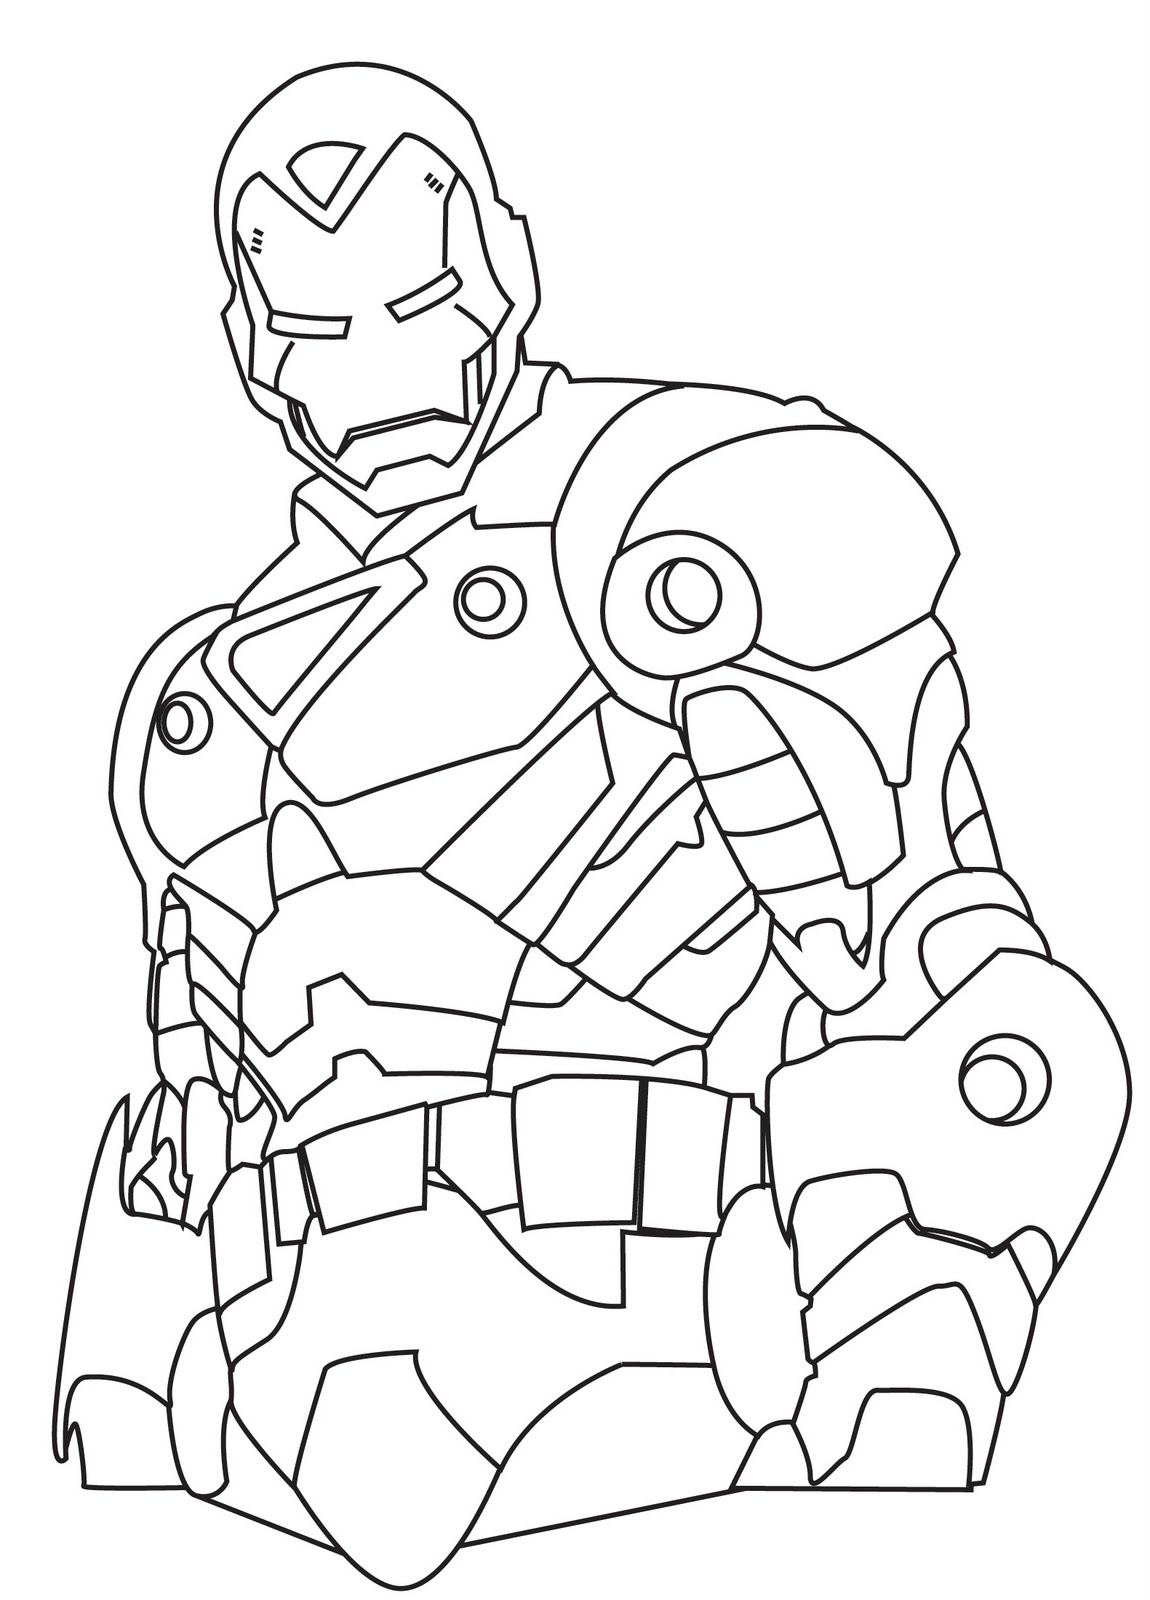 Iron Man 2 Coloring Pages Collections